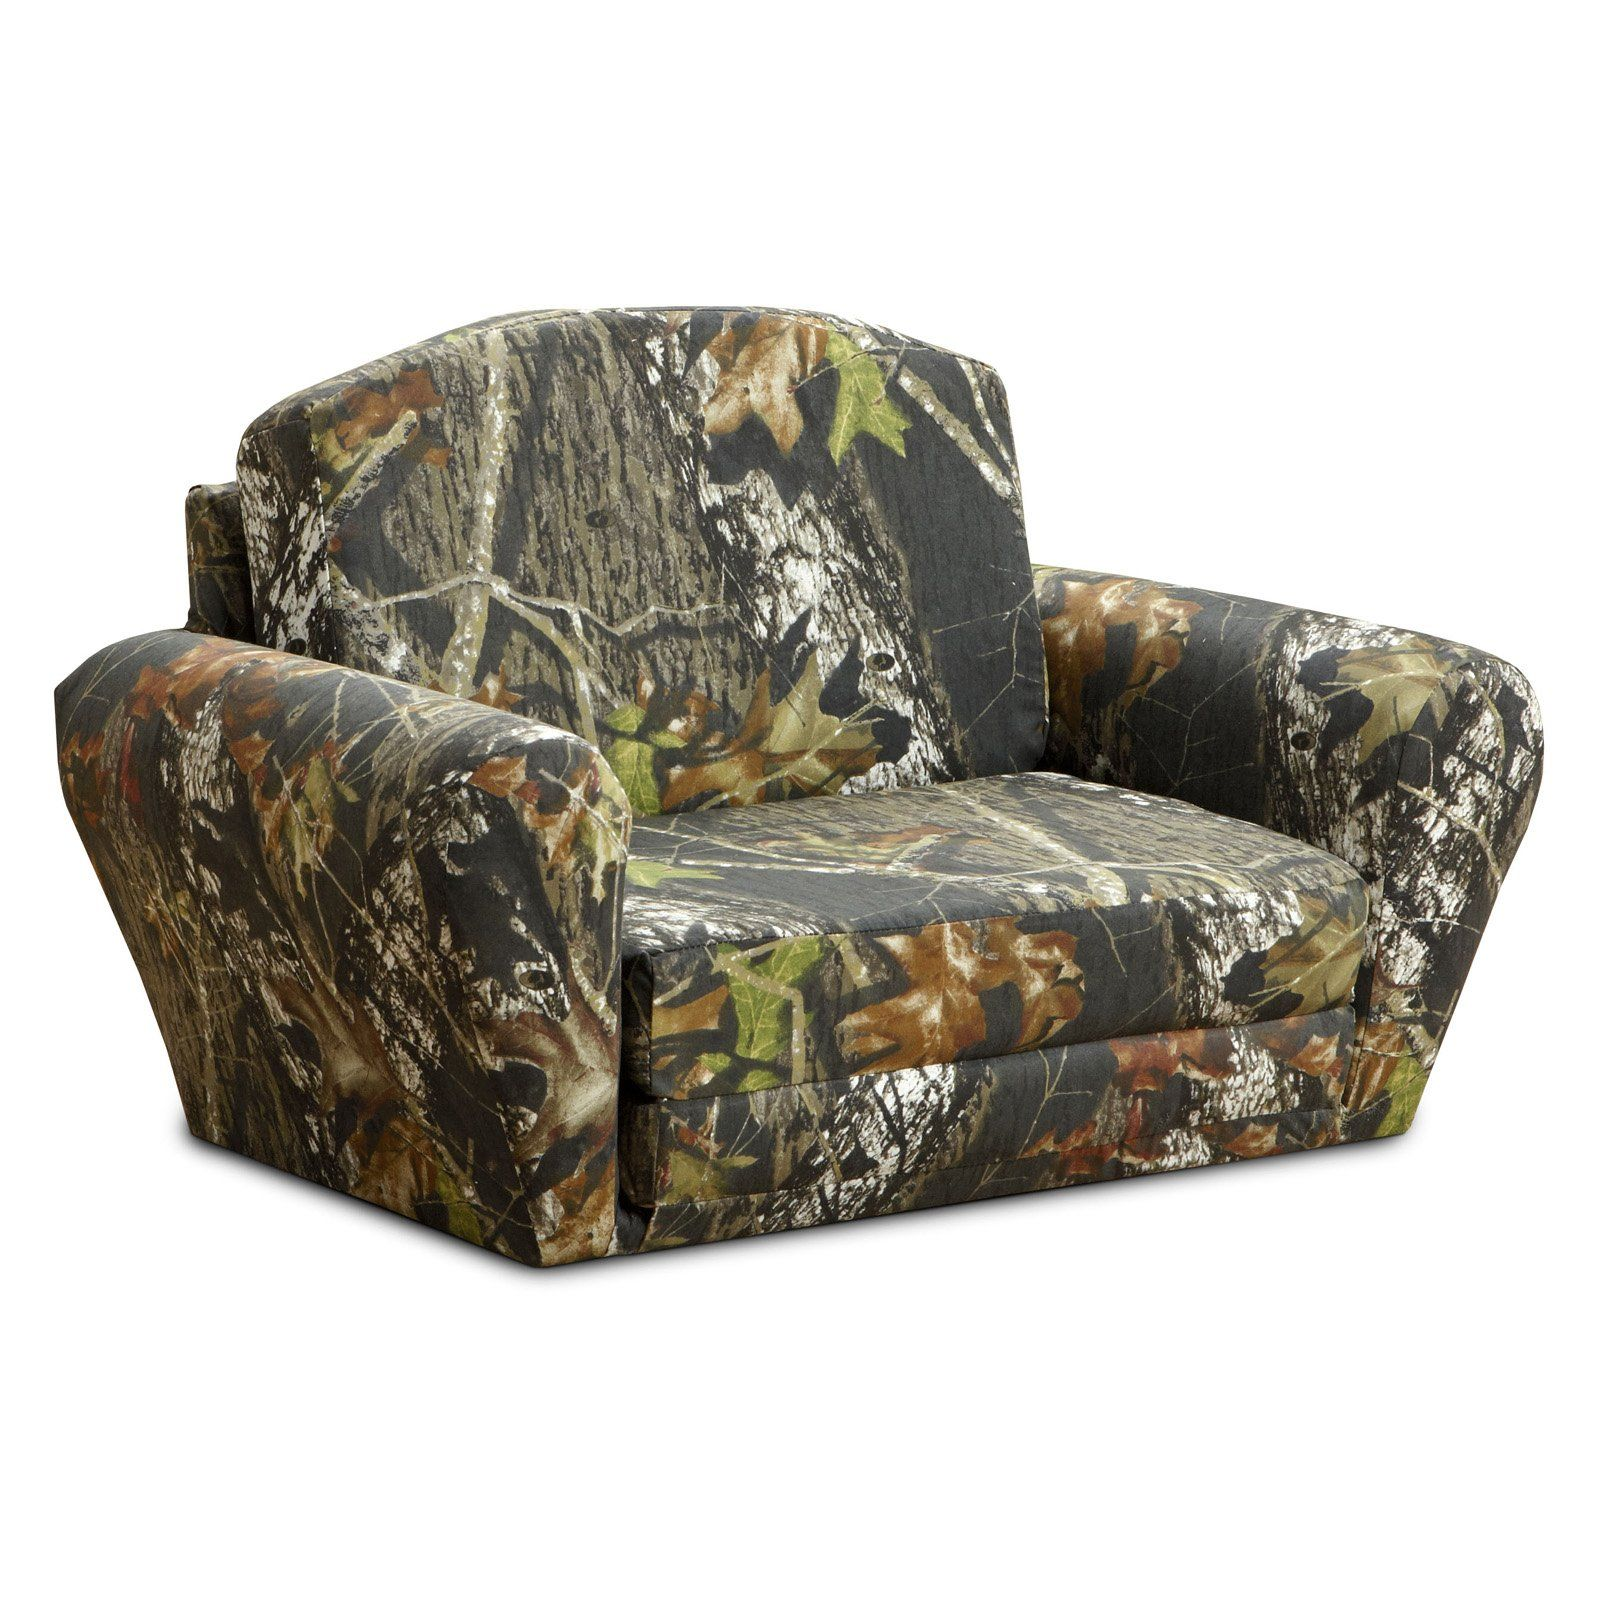 Best Camouflage Furniture Camouflage Bedroom Camouflage 400 x 300